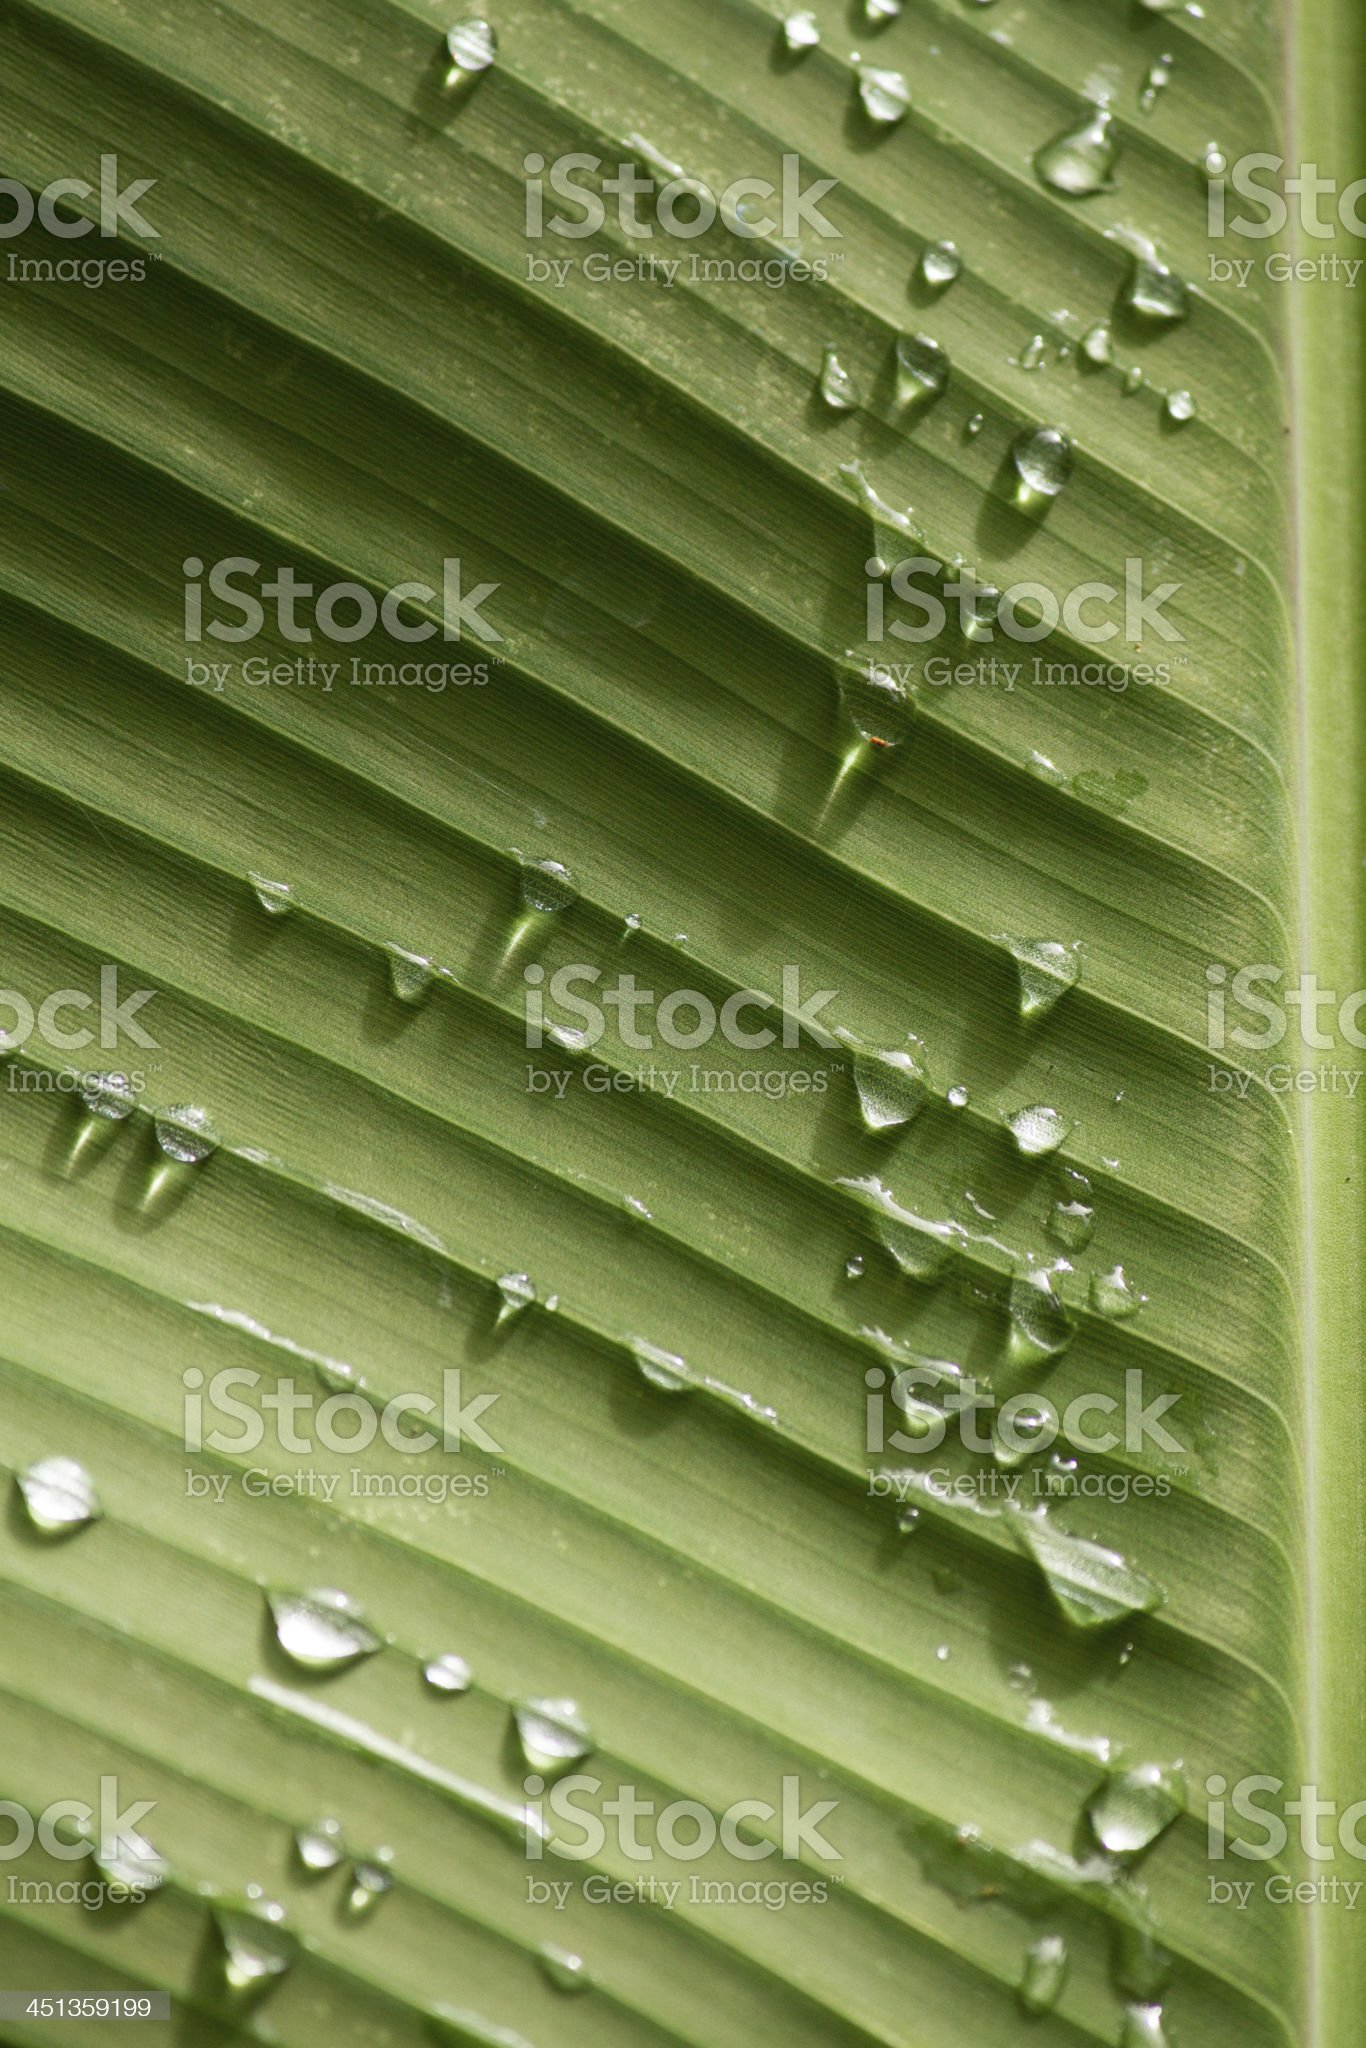 Water and Leaf royalty-free stock photo